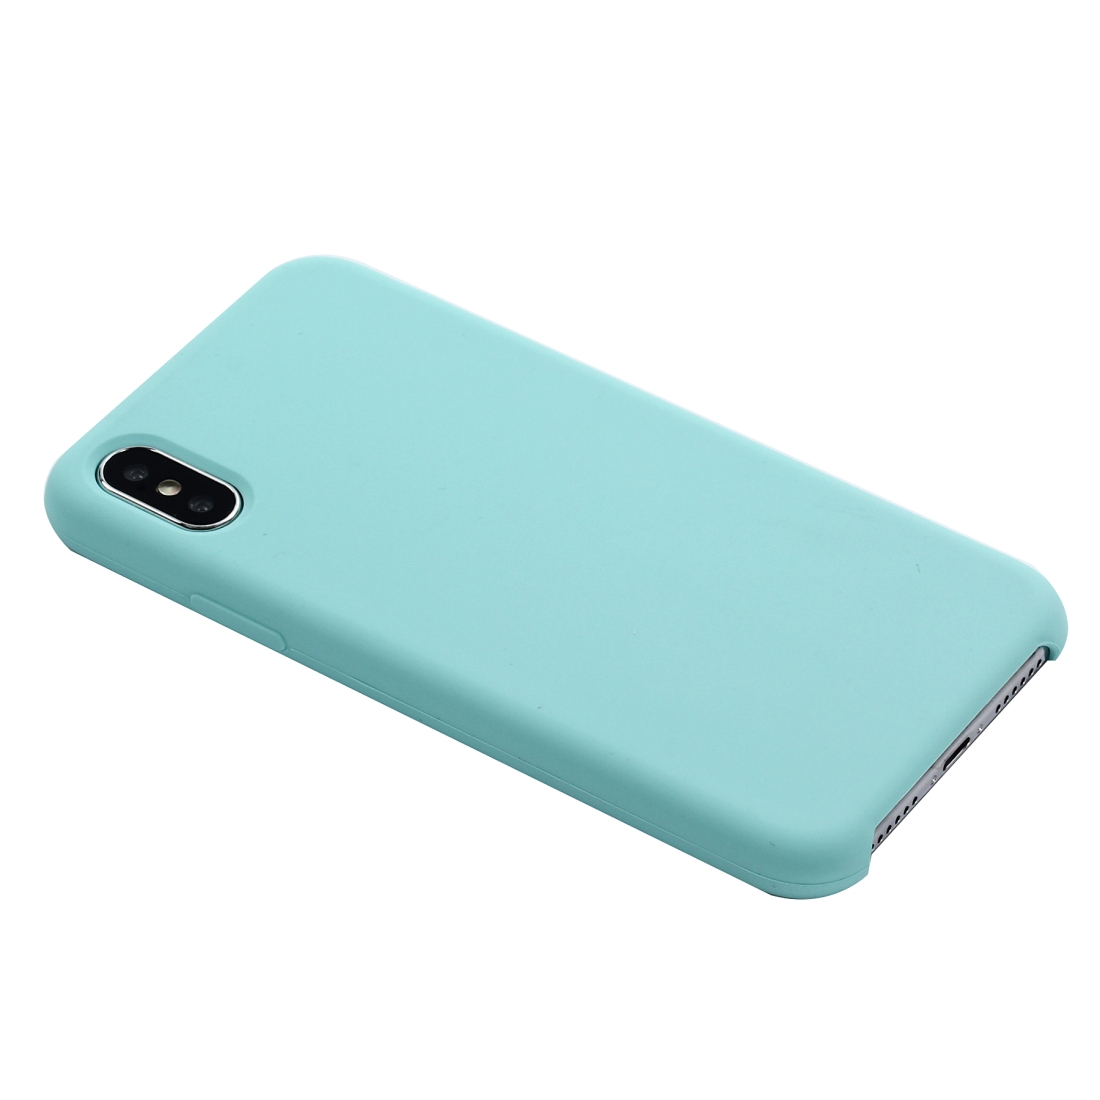 Four Corners Full Coverage Liquid Silicone Protective Case Back Cover for iPhone X / XS (Green)